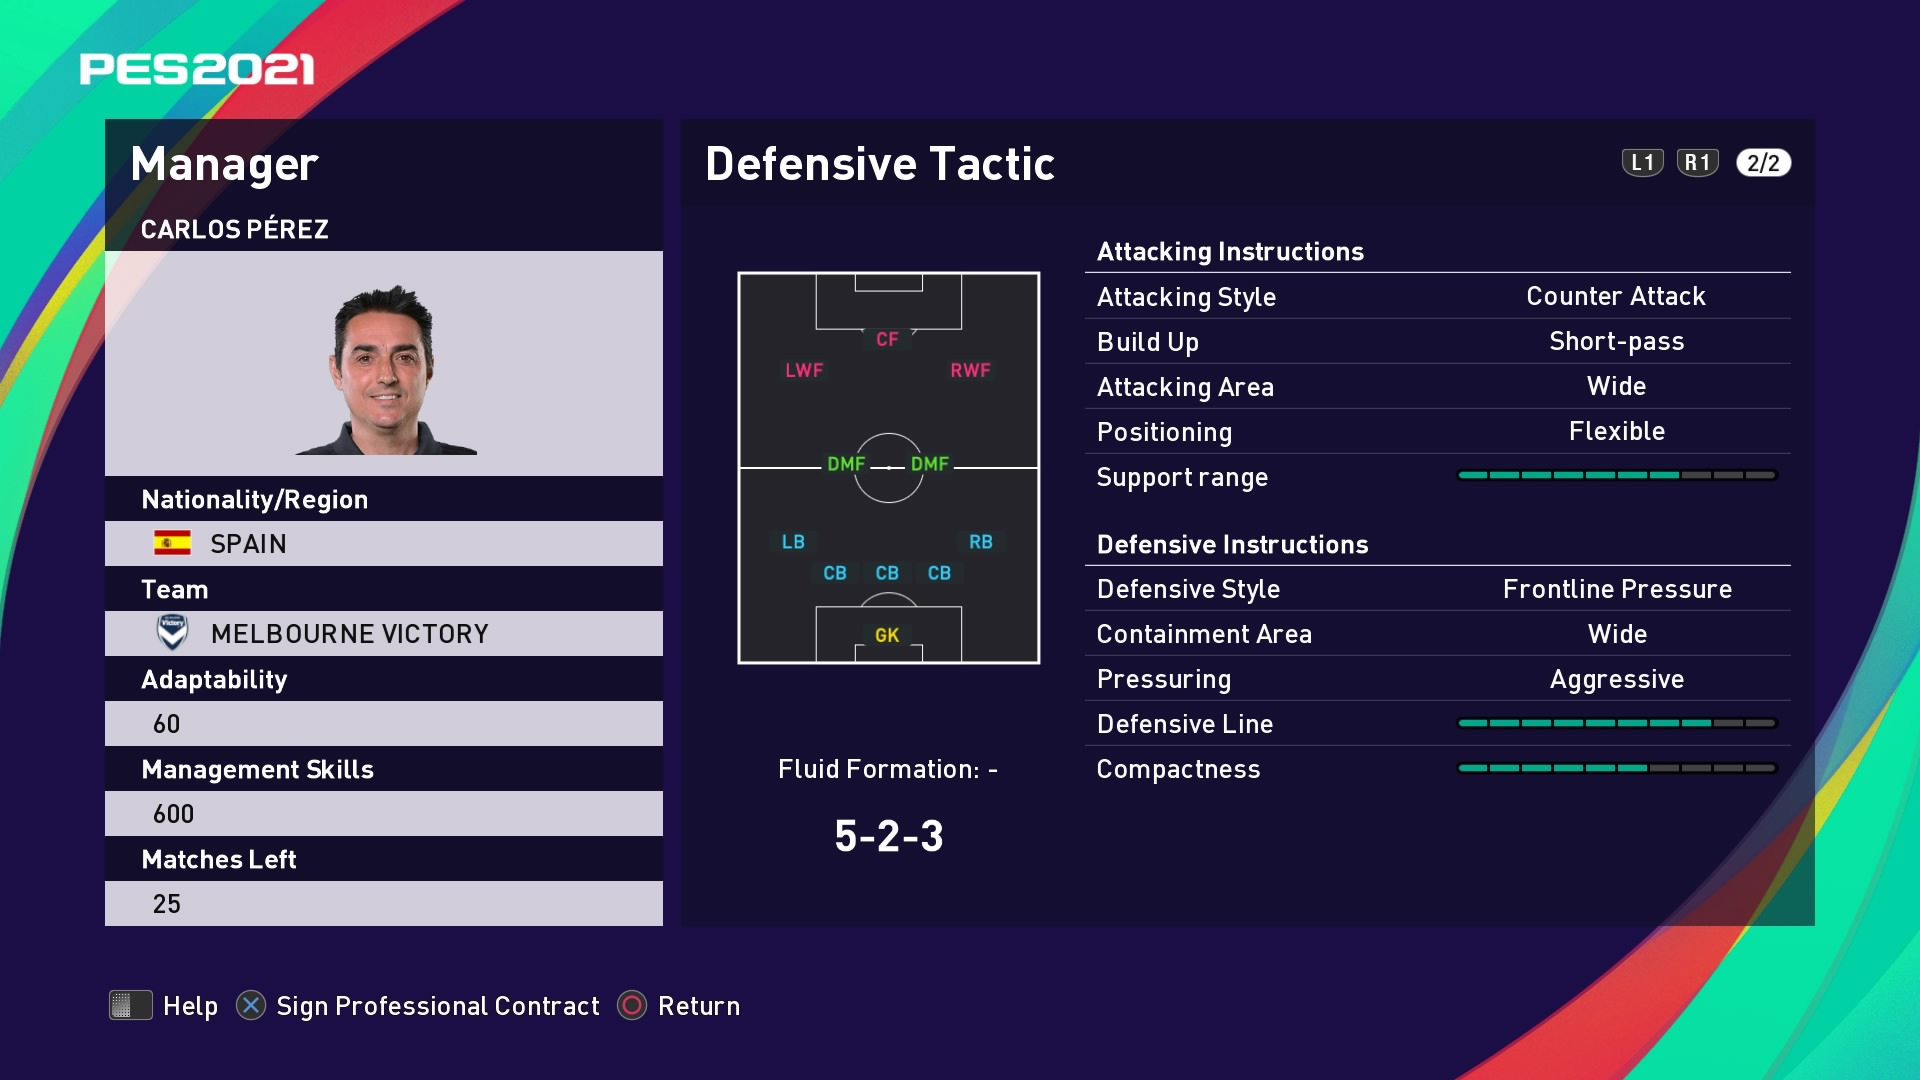 Carlos Pérez Defensive Tactic in PES 2021 myClub